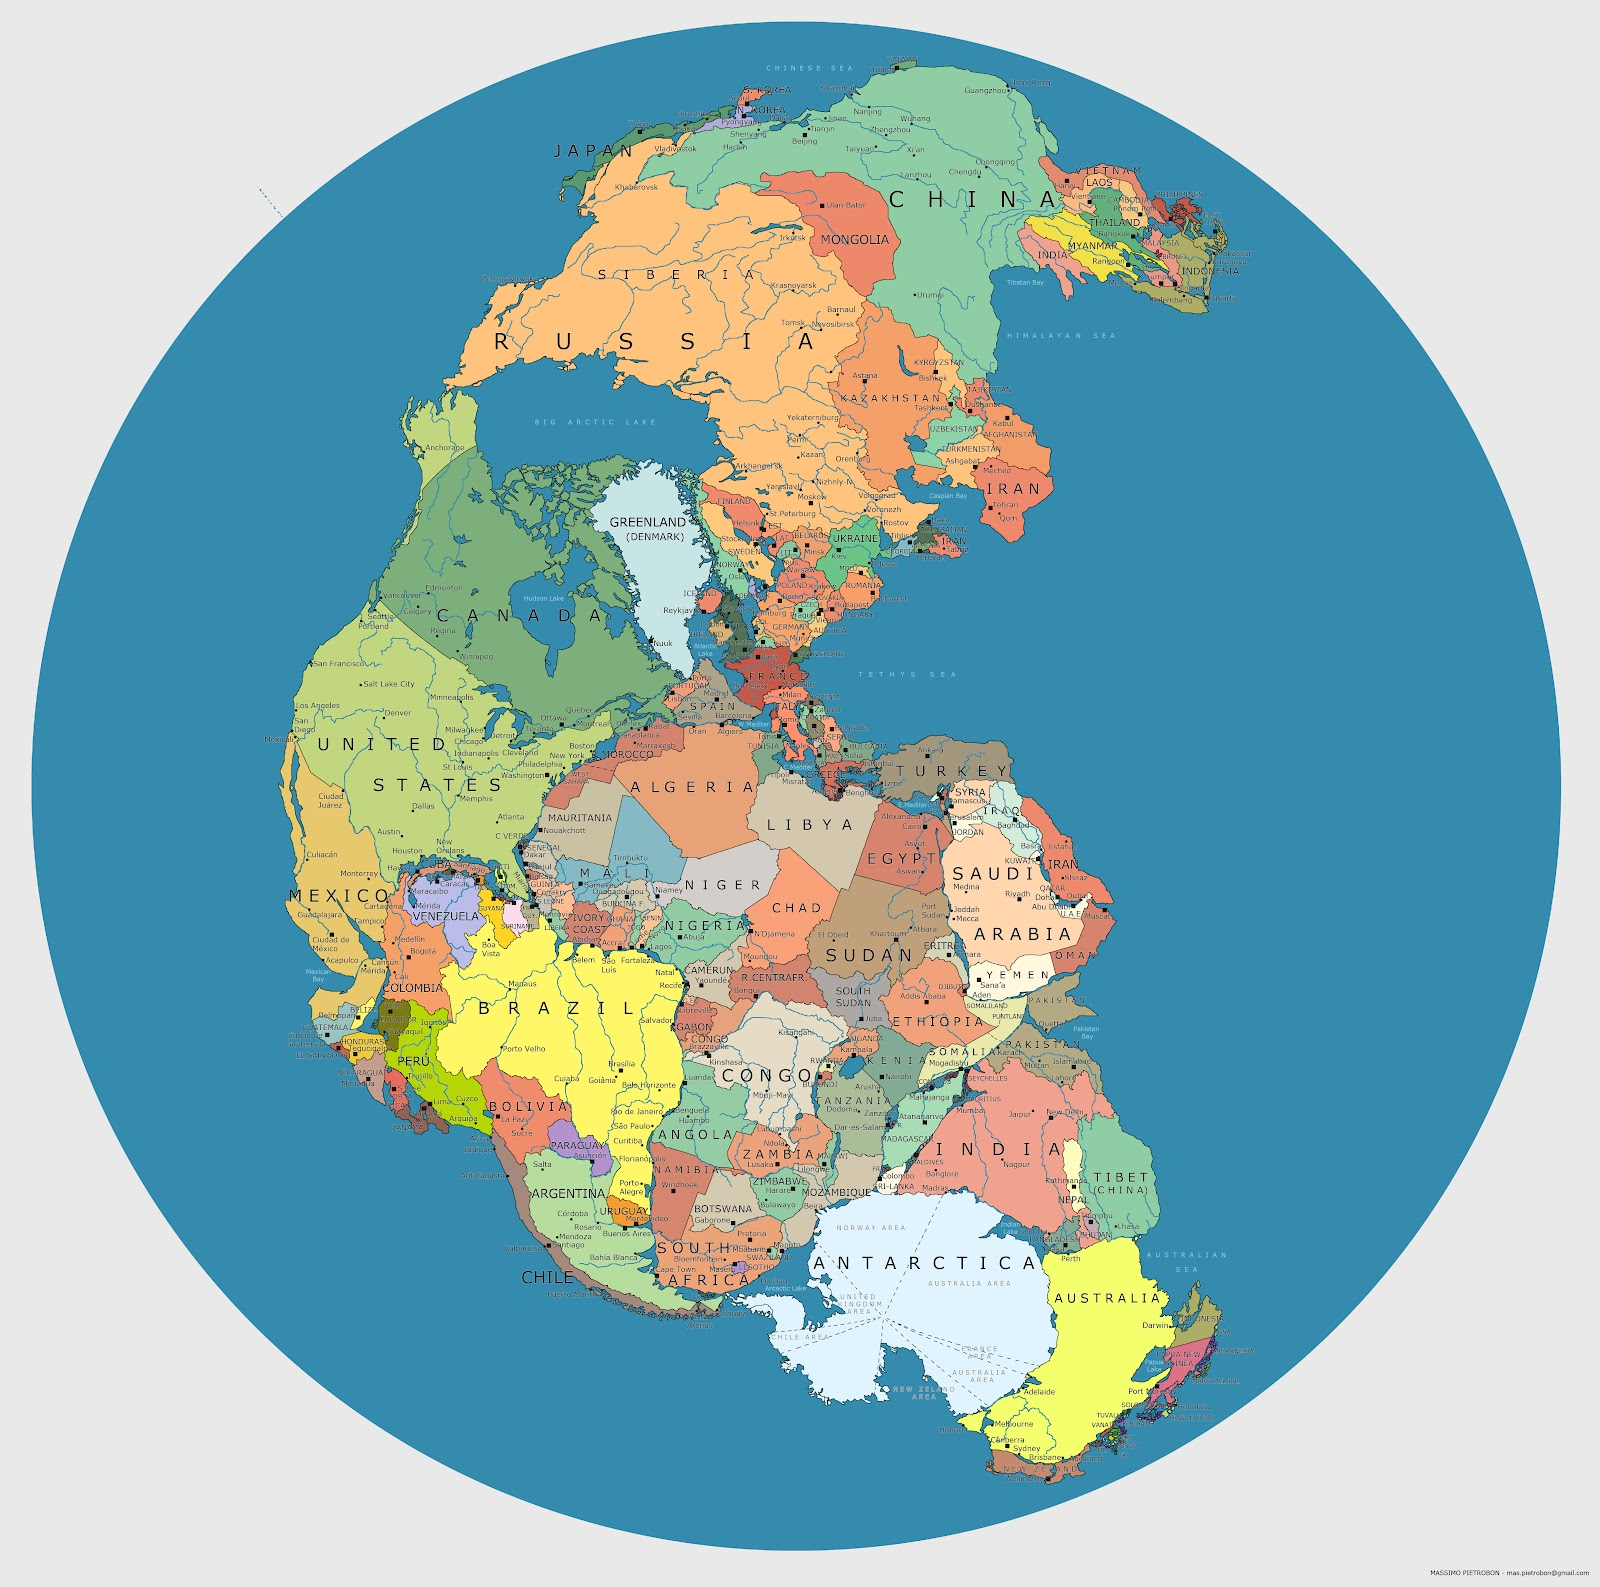 40 Maps That Will Help You Make Sense of the World «TwistedSifter